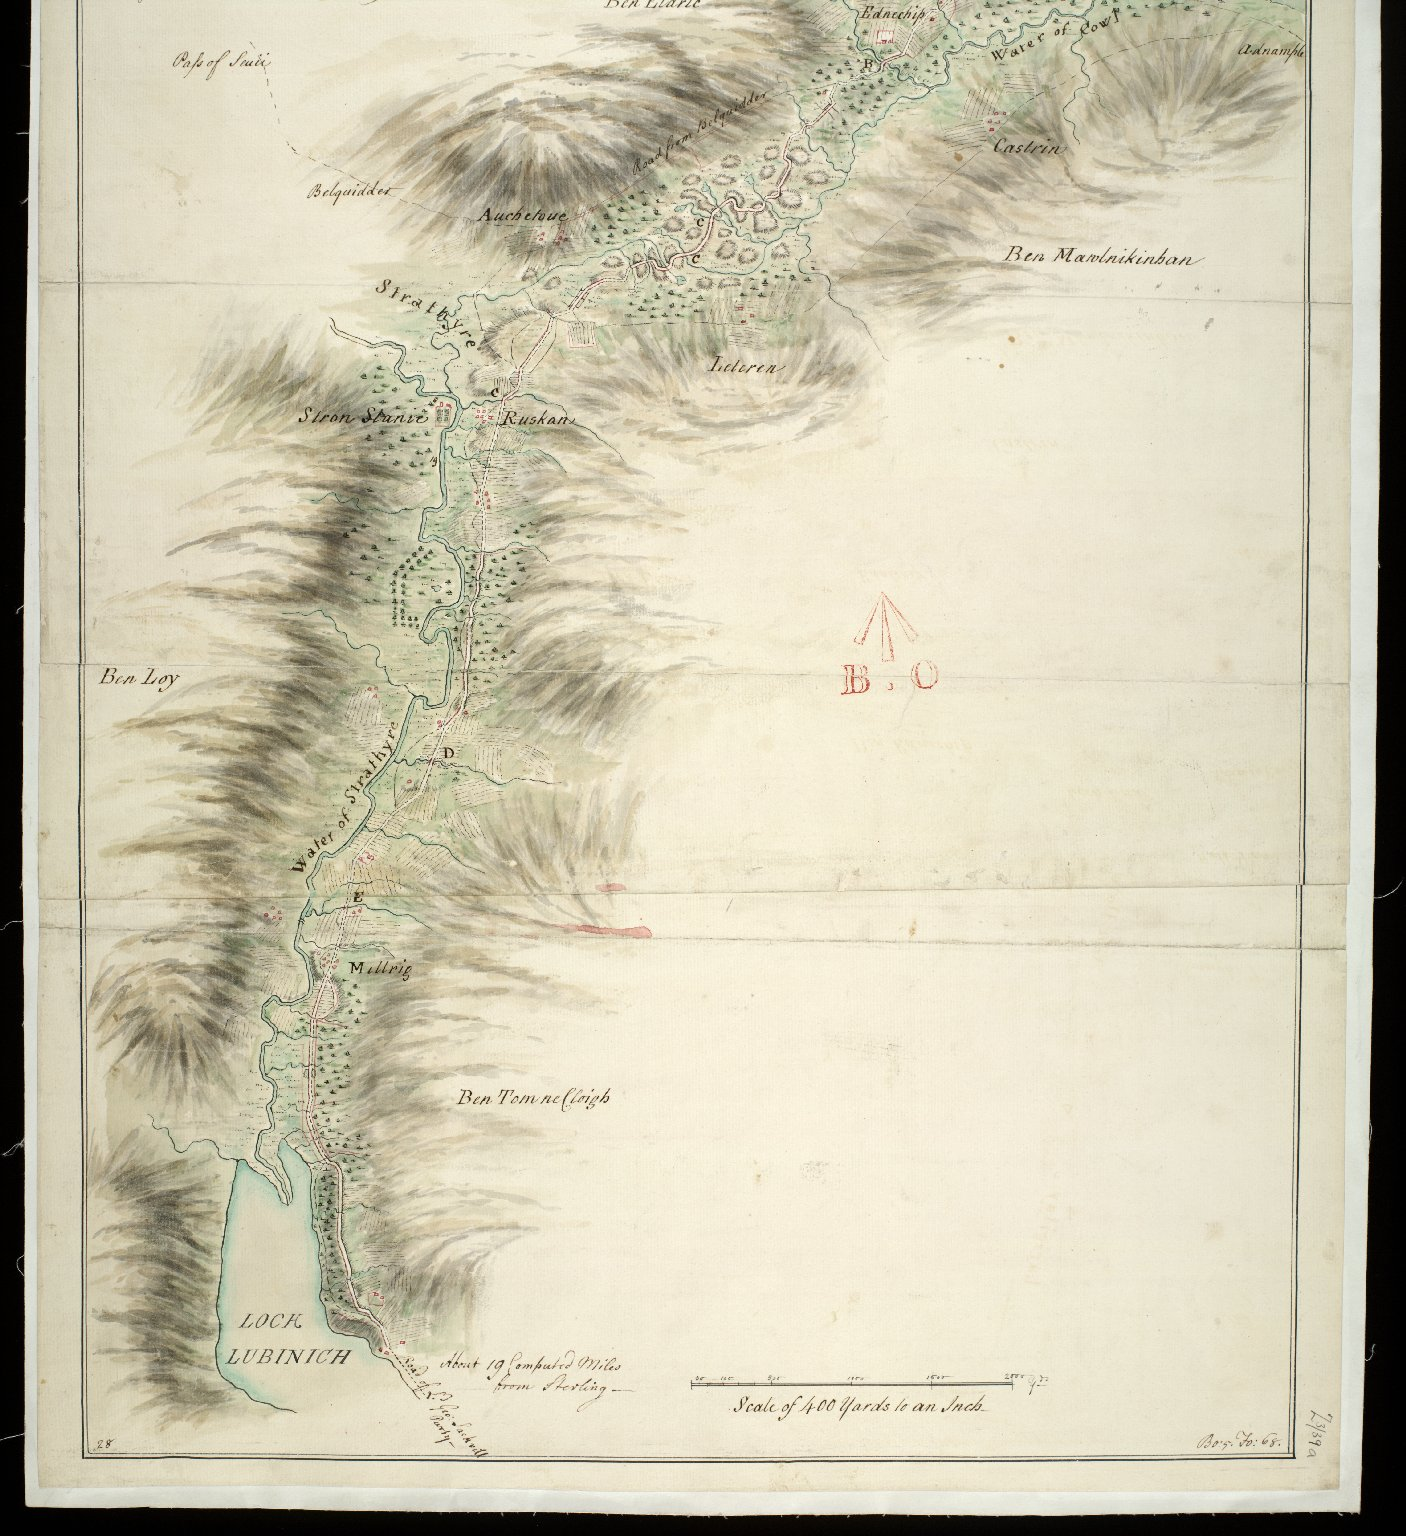 Survey of Part of the Road from Sterling to Fort William; Made by the Party of Genl. Pultneys Regiment in 1749 [2 of 2]